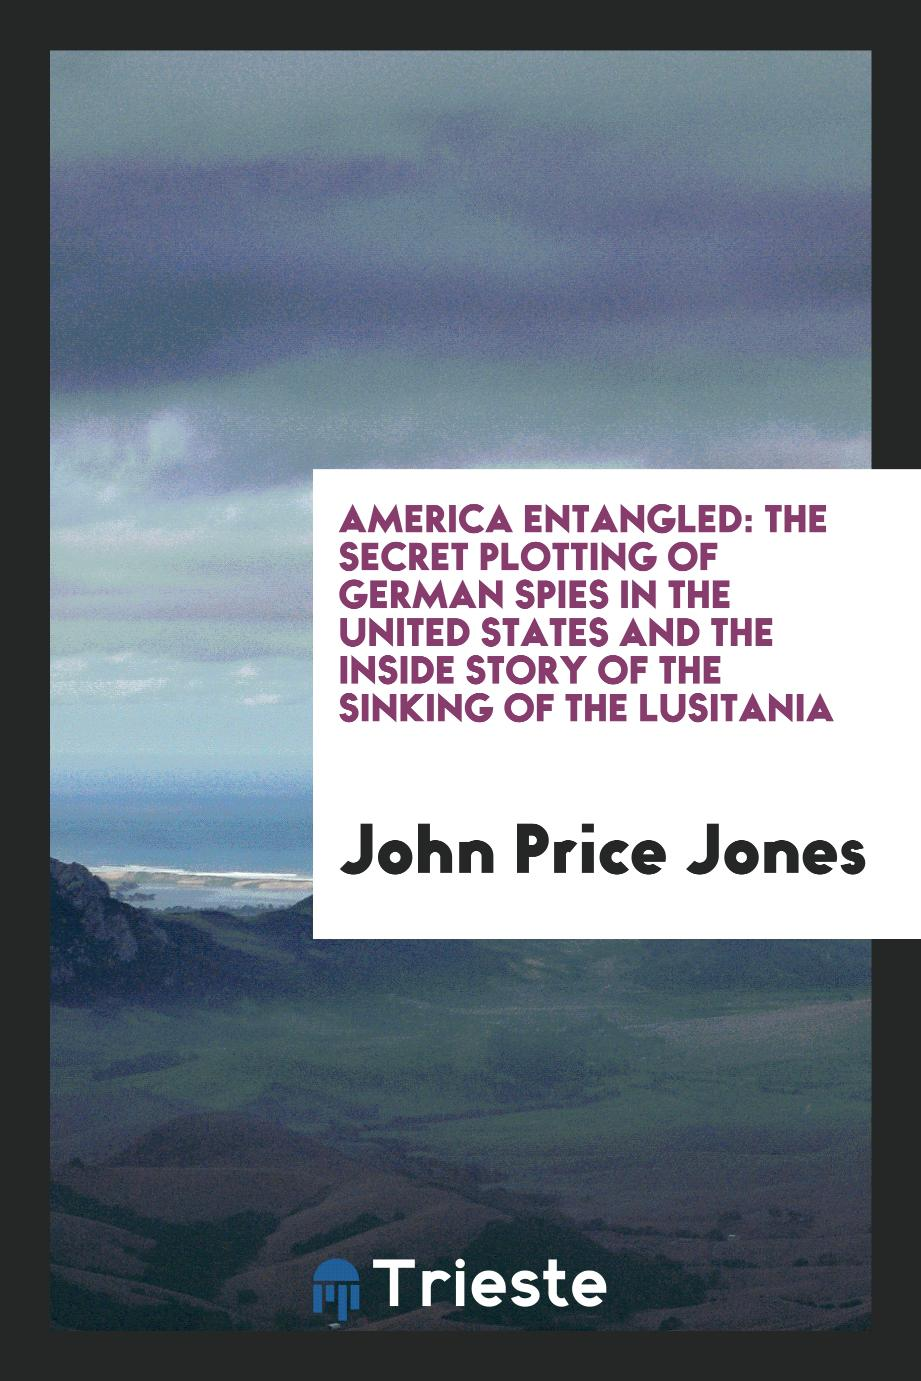 America Entangled: The Secret Plotting of German Spies in the United States and the Inside Story of the Sinking of the Lusitania